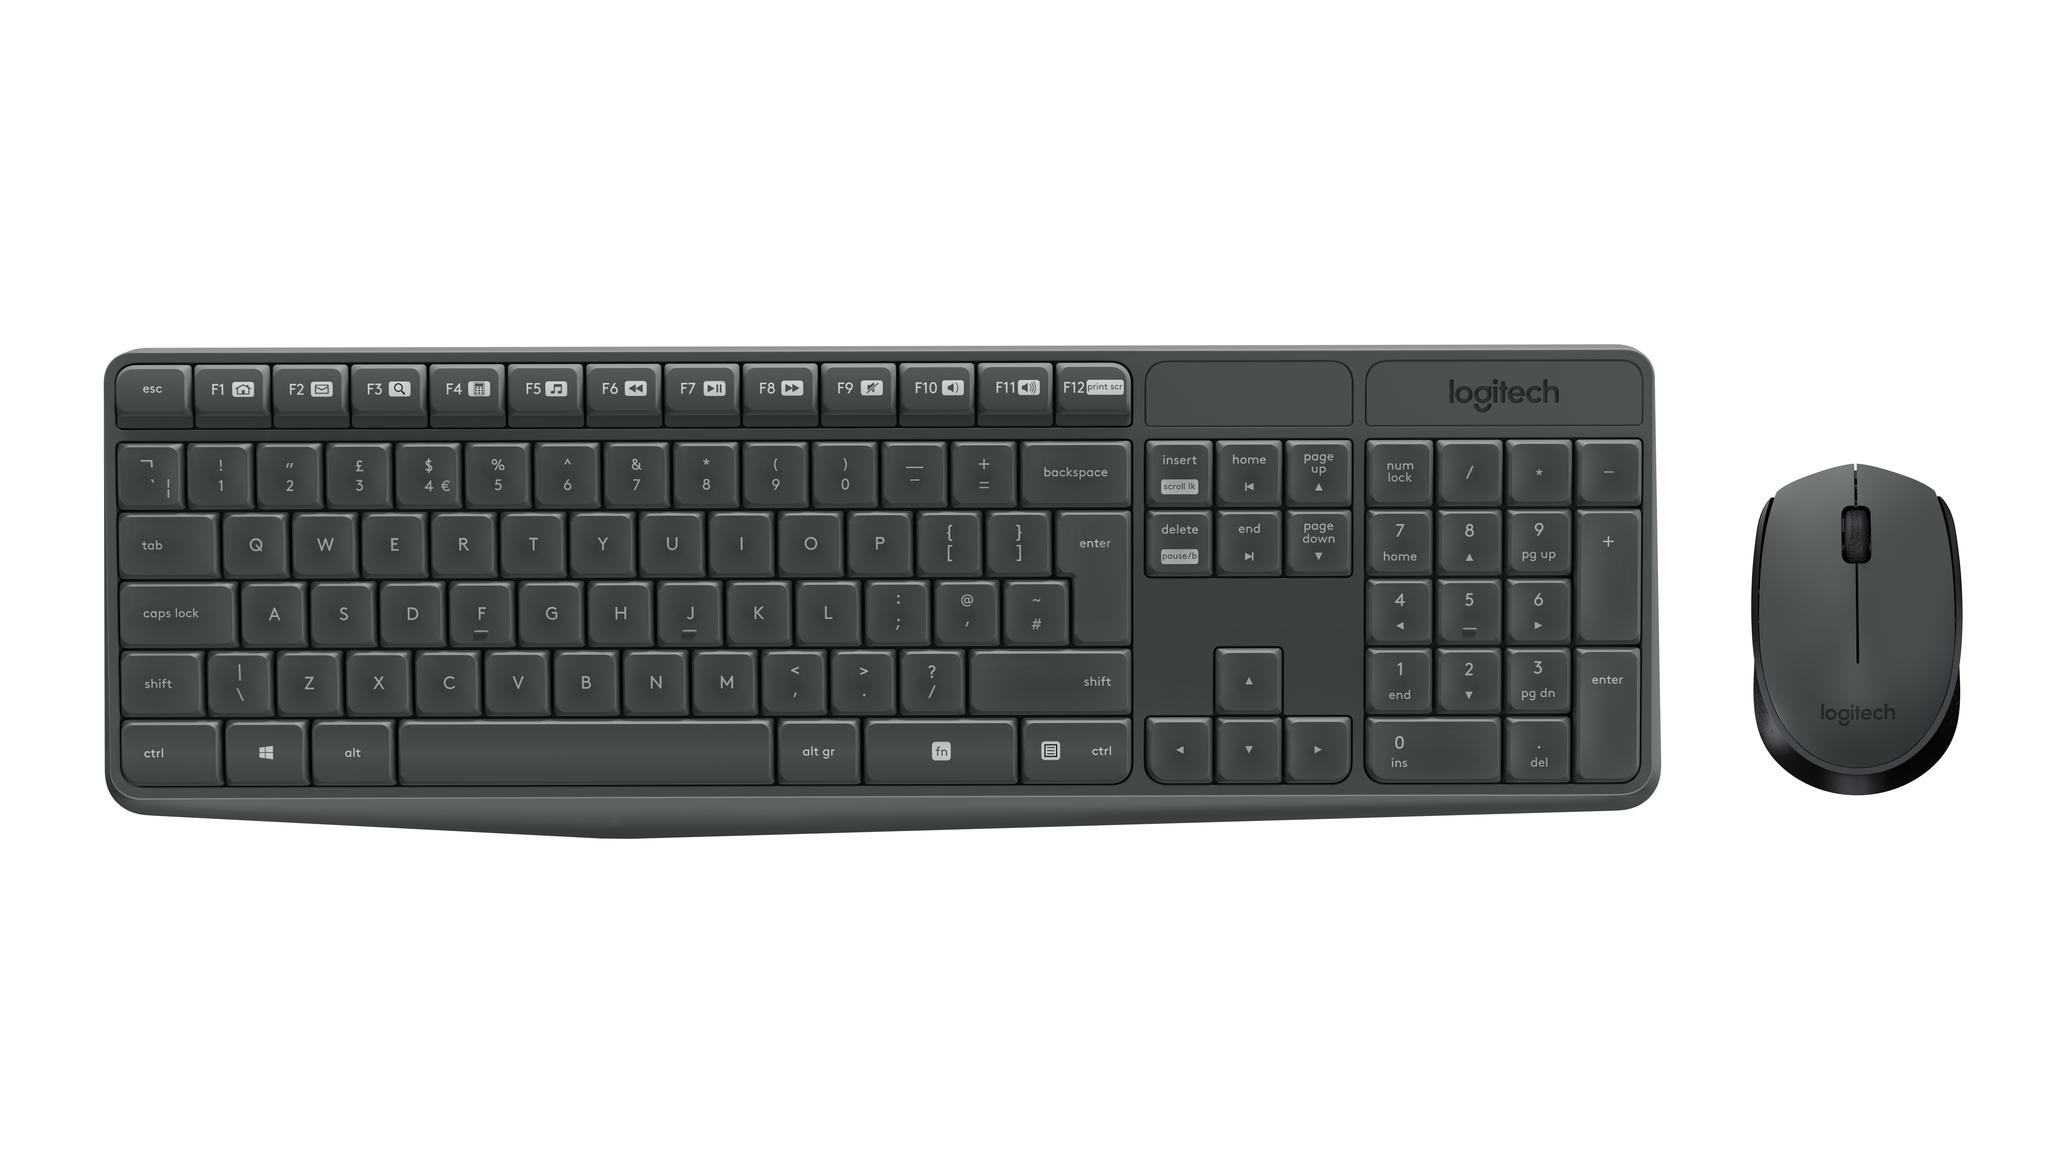 Logitech MK235 Wireless Keyboard and Mouse Combo-GREY-US INT'L-2.4GHZ-INTNL-(GR (920-007931)